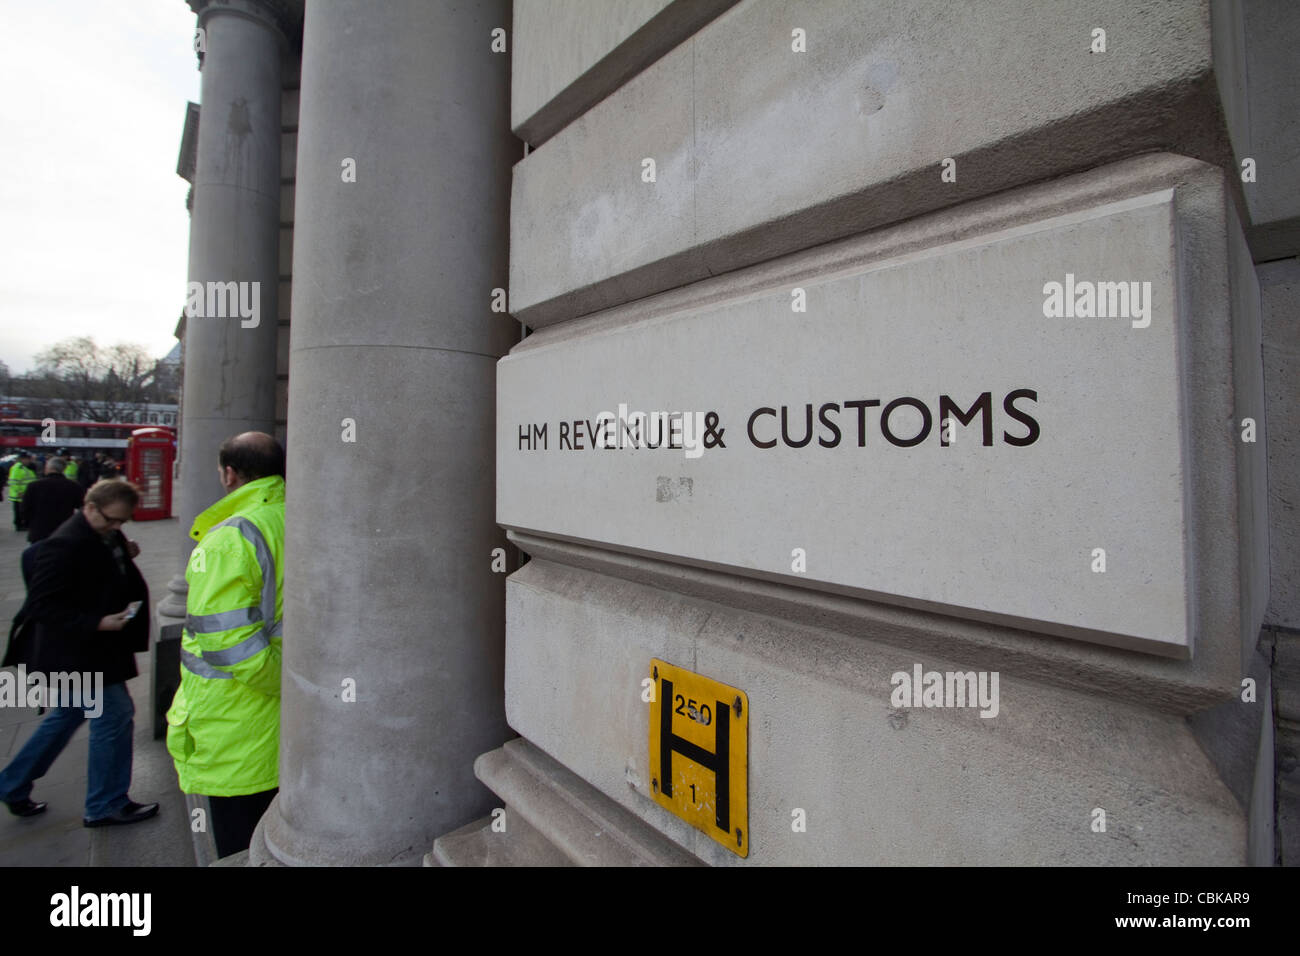 H M Revenue and Customs, Her Majesty's Revenue and Customs offices Whitehall, Londres Photo Stock